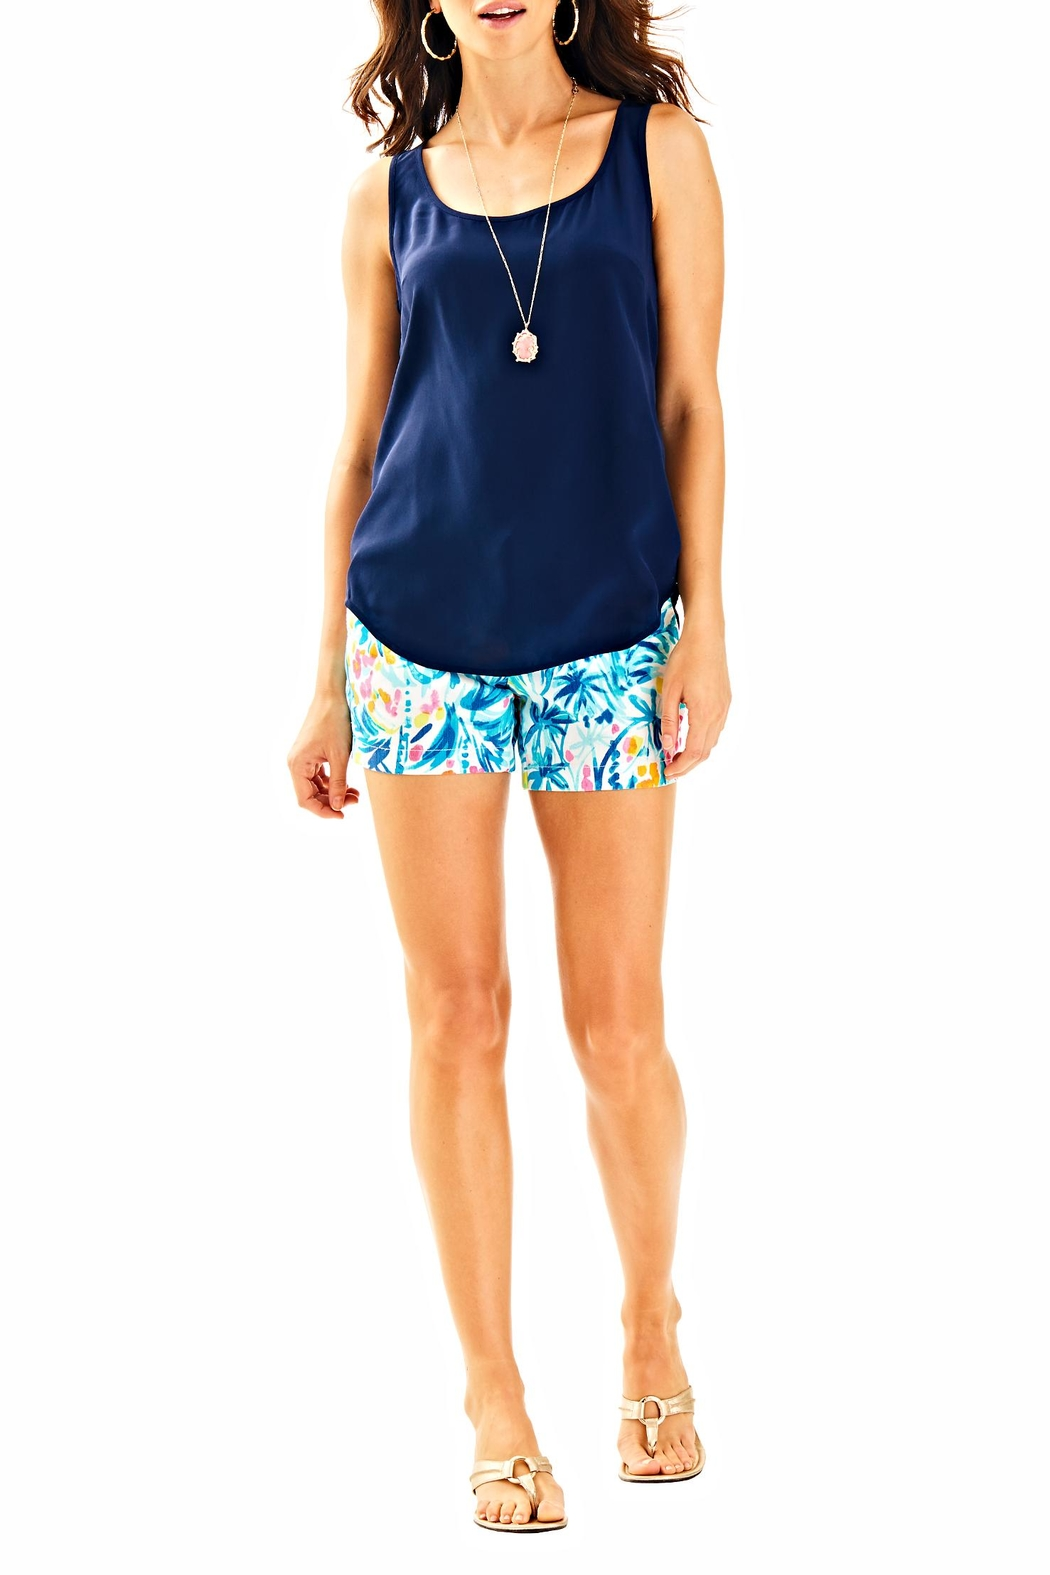 Lilly Pulitzer Alyssa Silk Top - Side Cropped Image